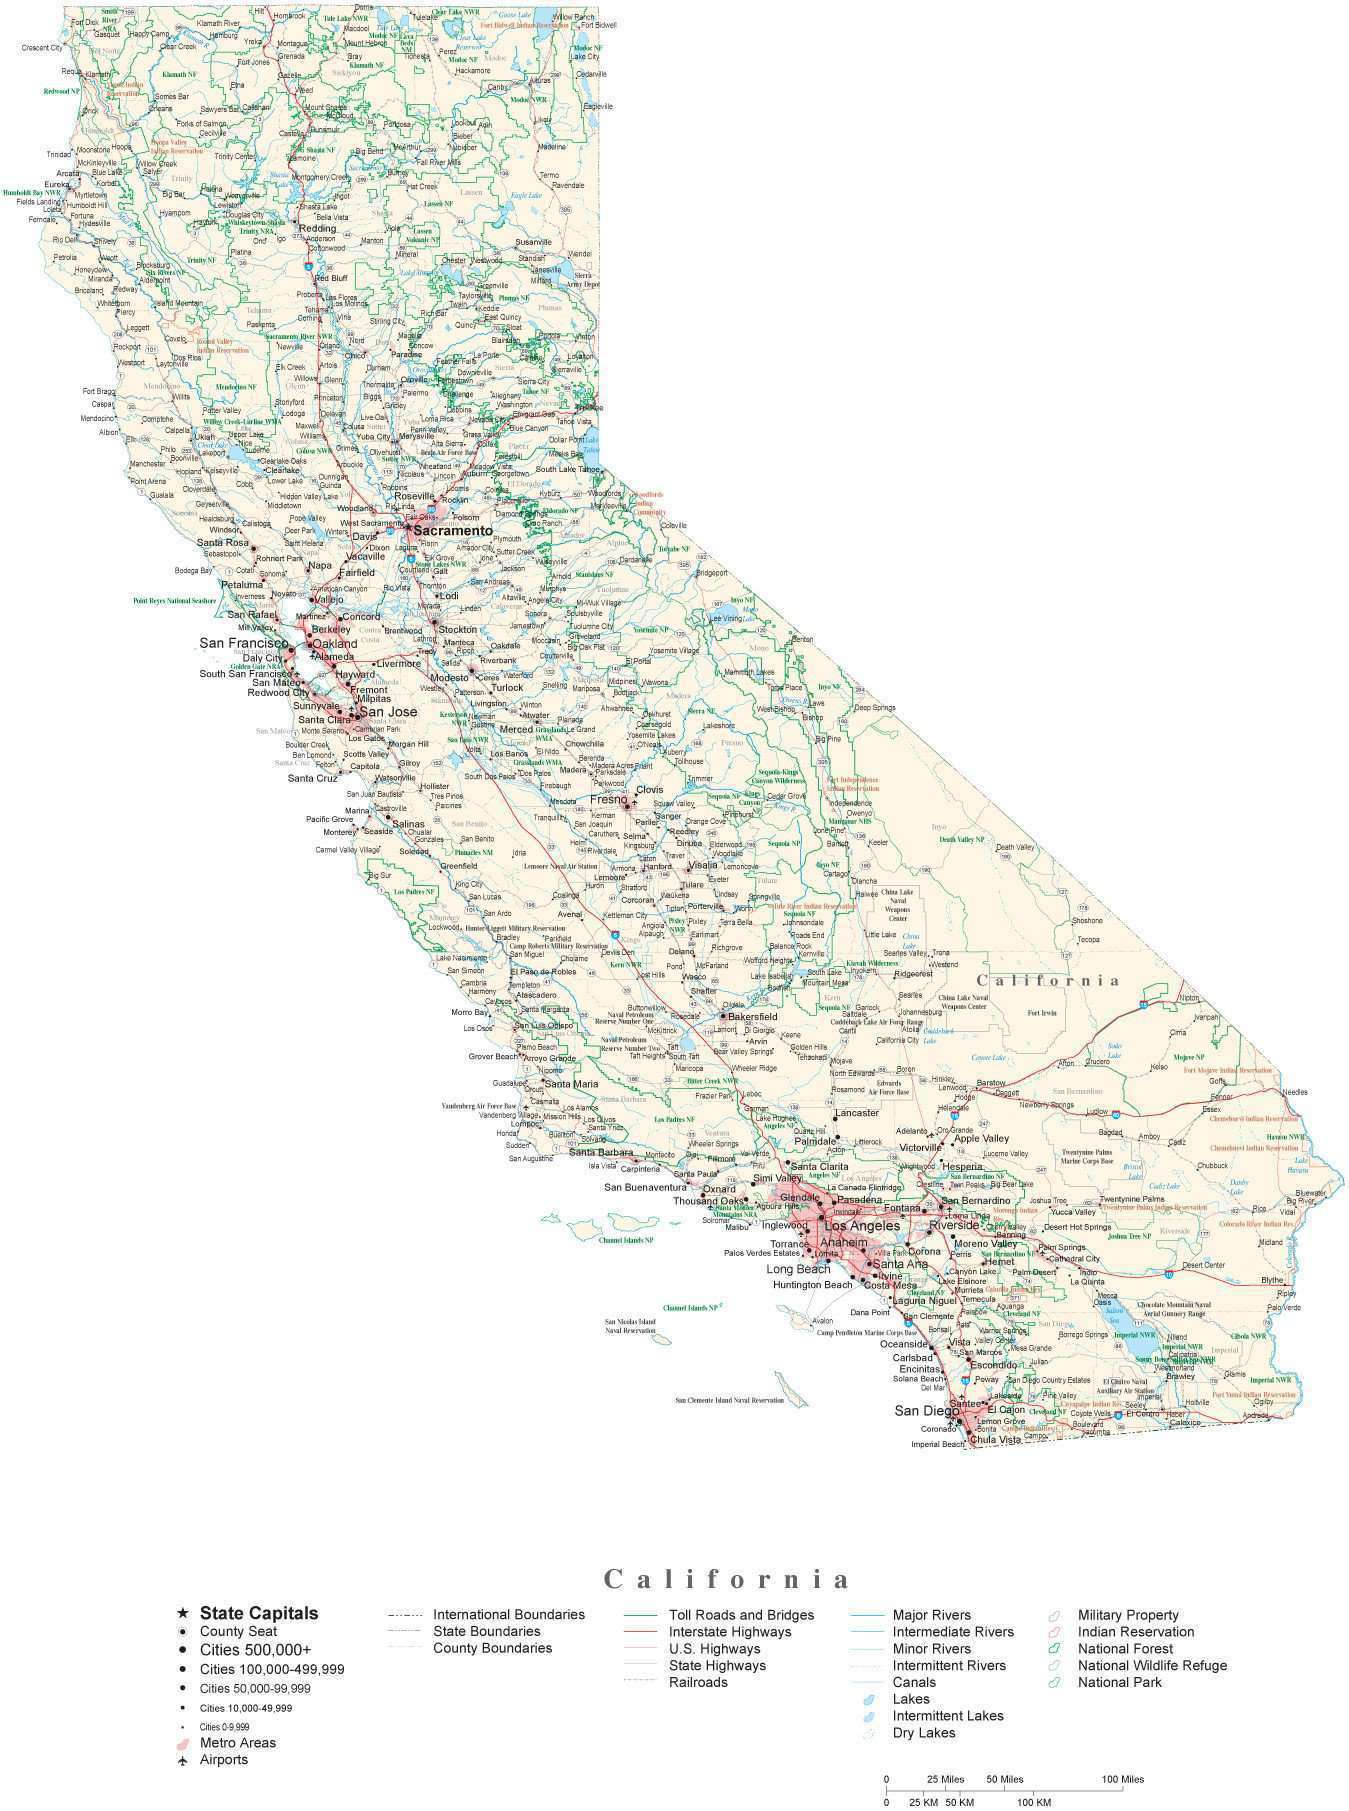 Detailed California Cut-Out Style Digital Map with County Boundaries,  Cities, Highways, National Parks, and more